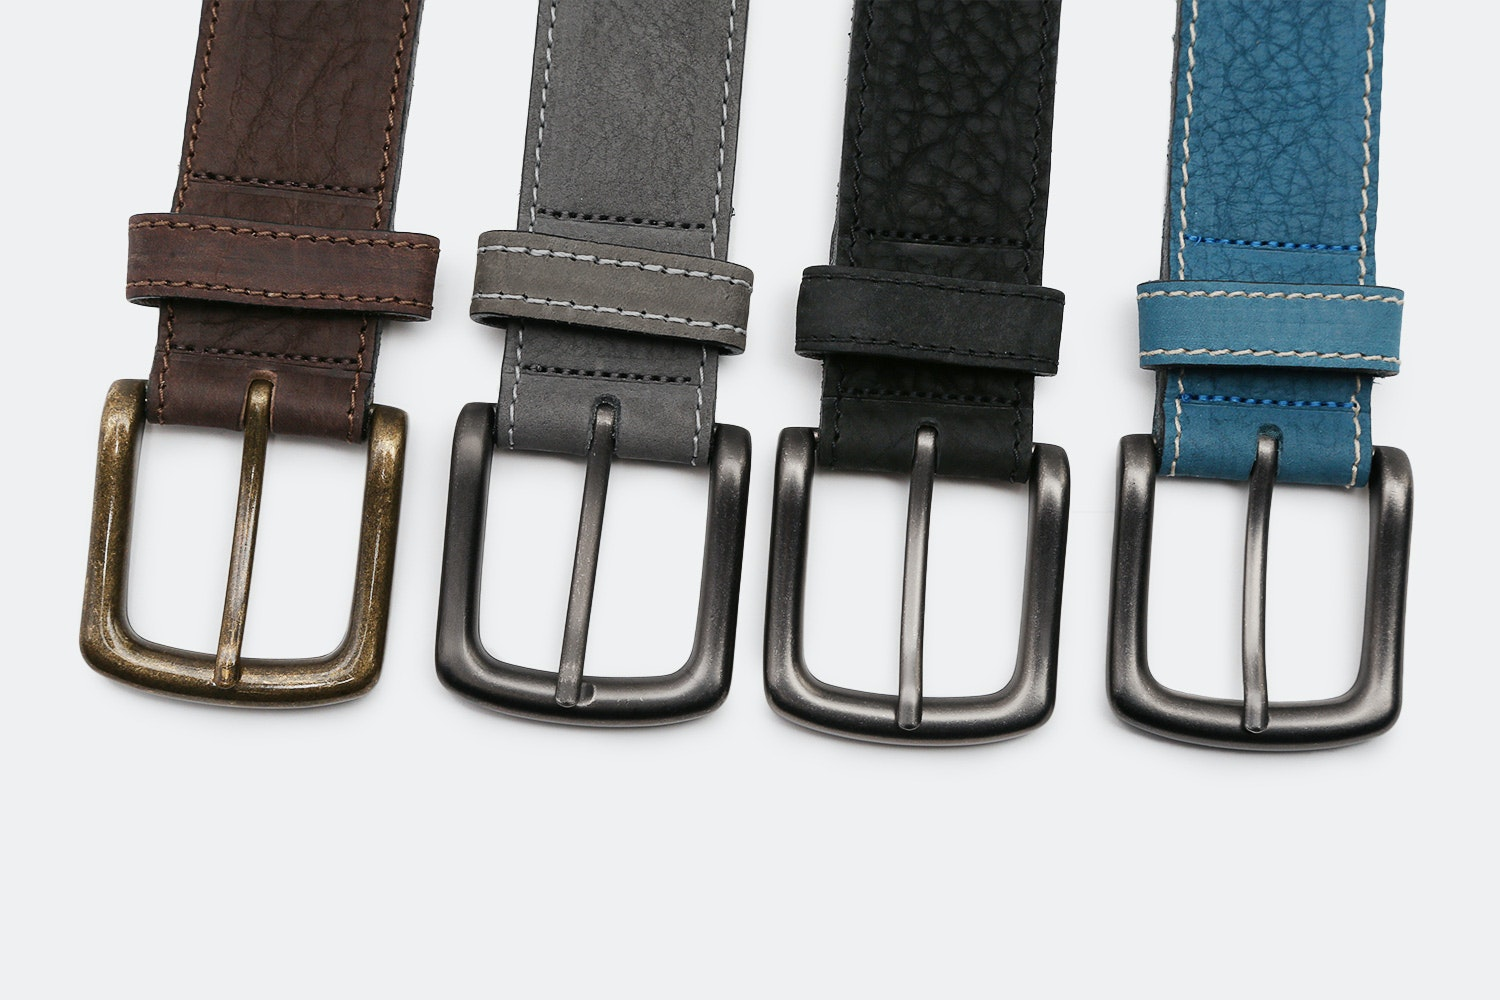 The British Belt Co. Kendal Belt